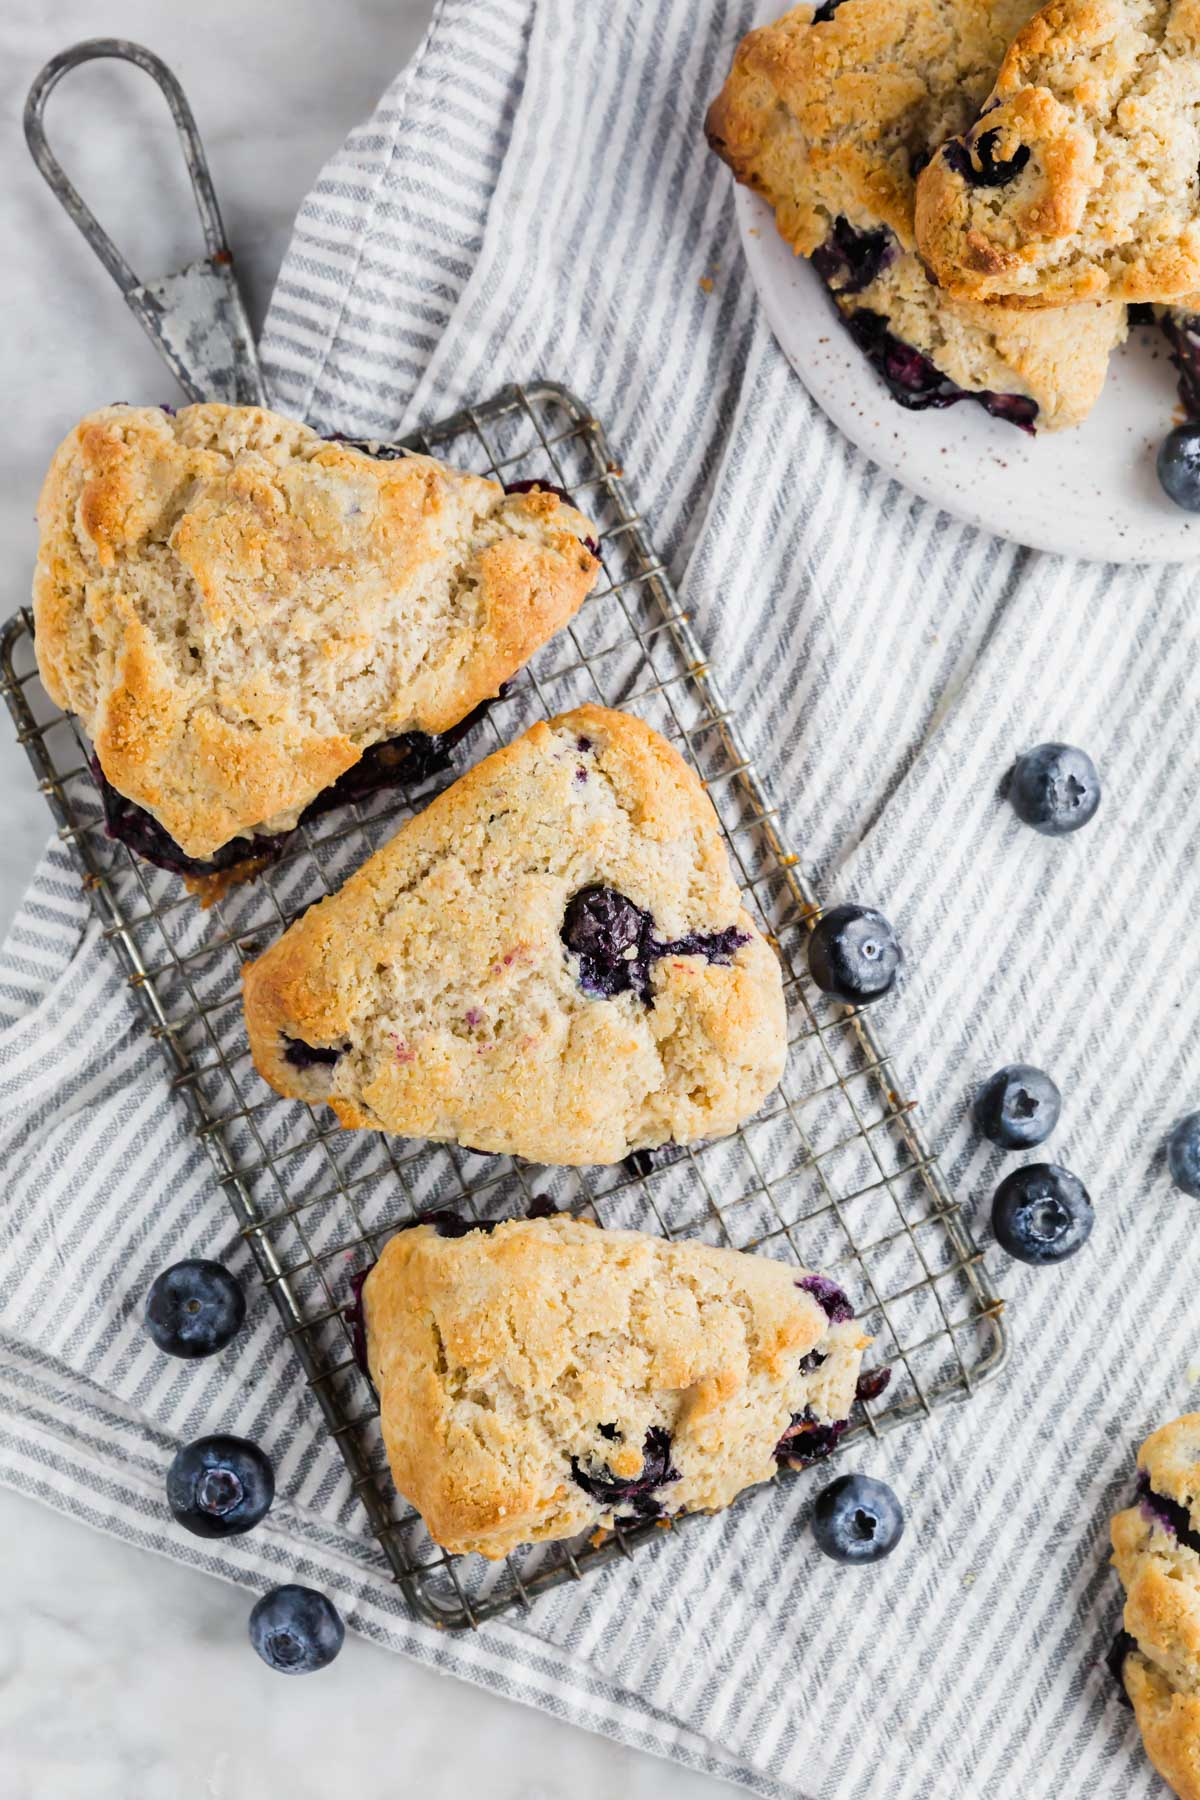 An aerial view of three gluten-free blueberry scones on a drying rack with fresh blueberries surrounding it.